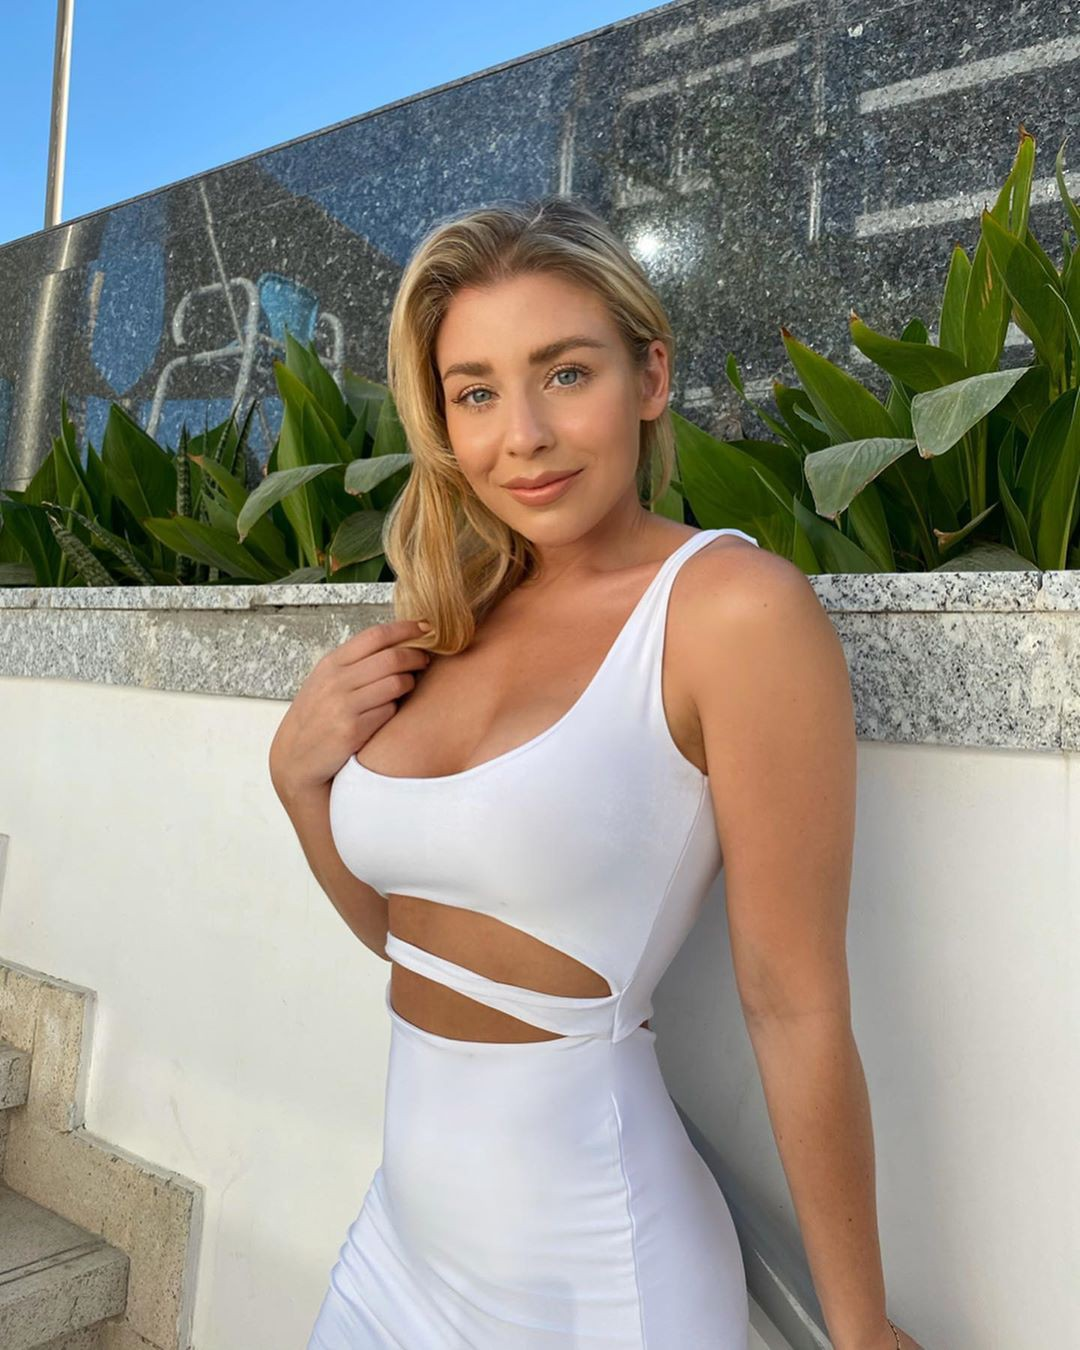 white colour dress with dress, photoshoot poses, blond hairs pic